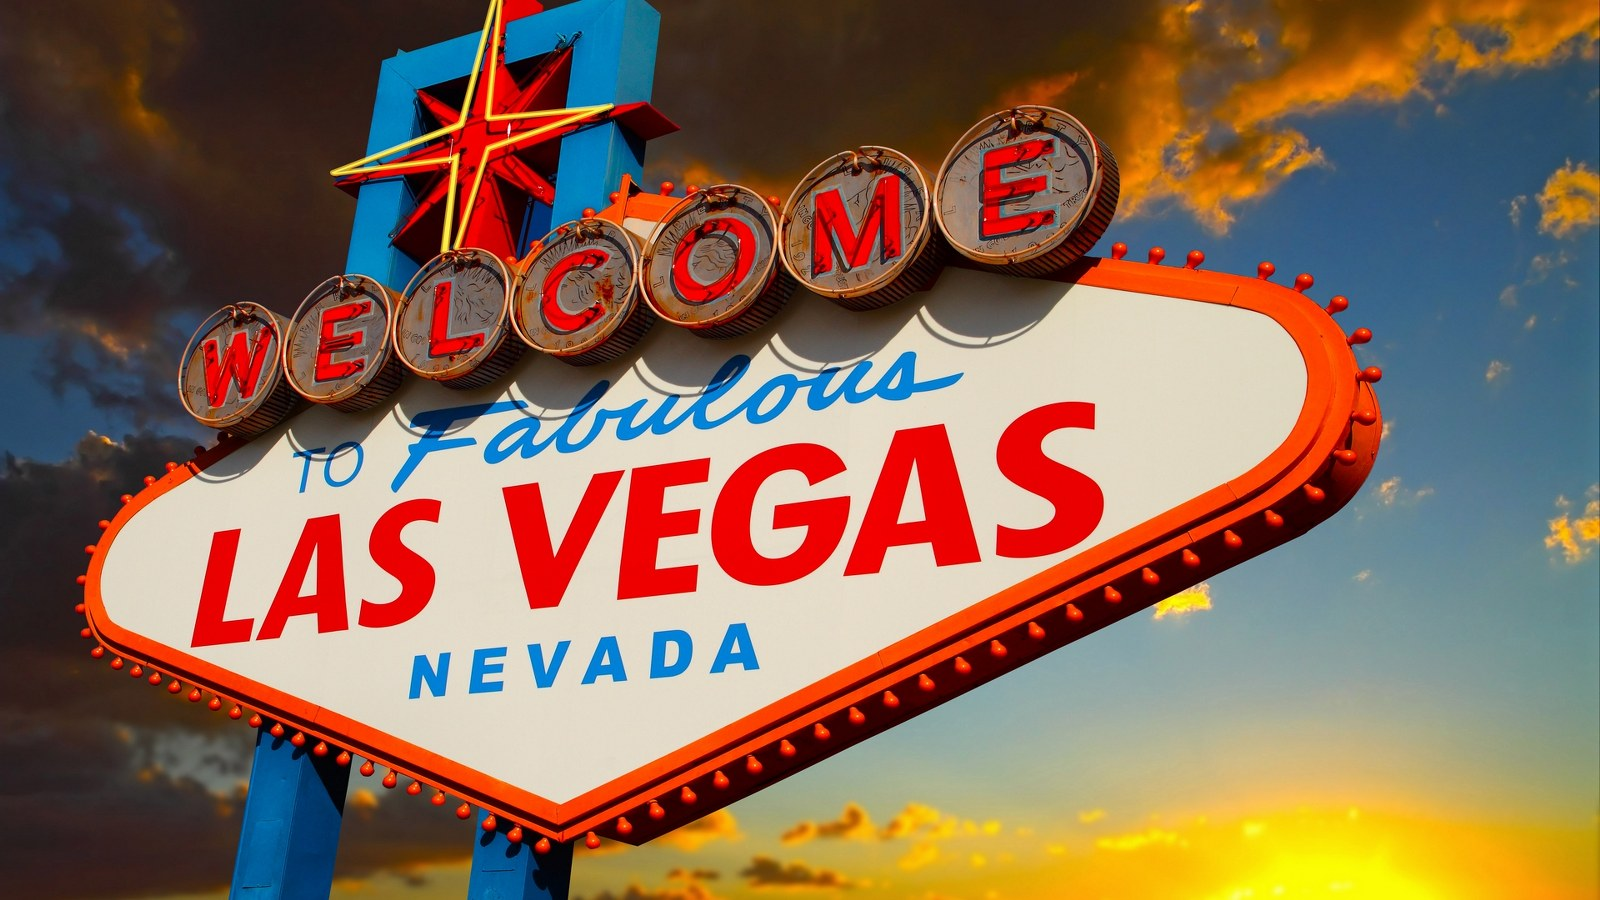 46 Hd Las Vegas Wallpaper On Wallpapersafari